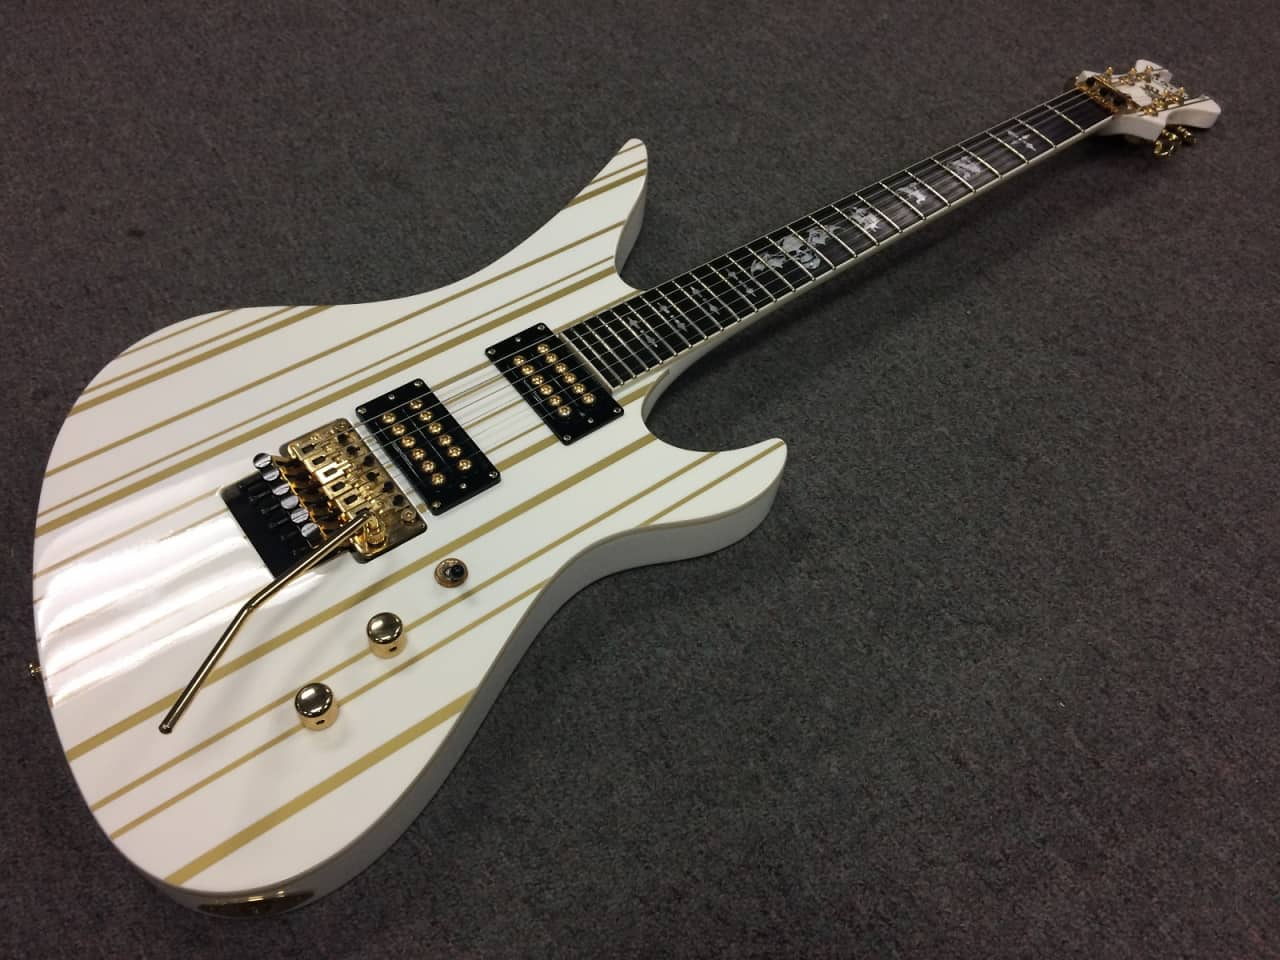 Schecter Synyster Gates Limited Edition Signature Custom